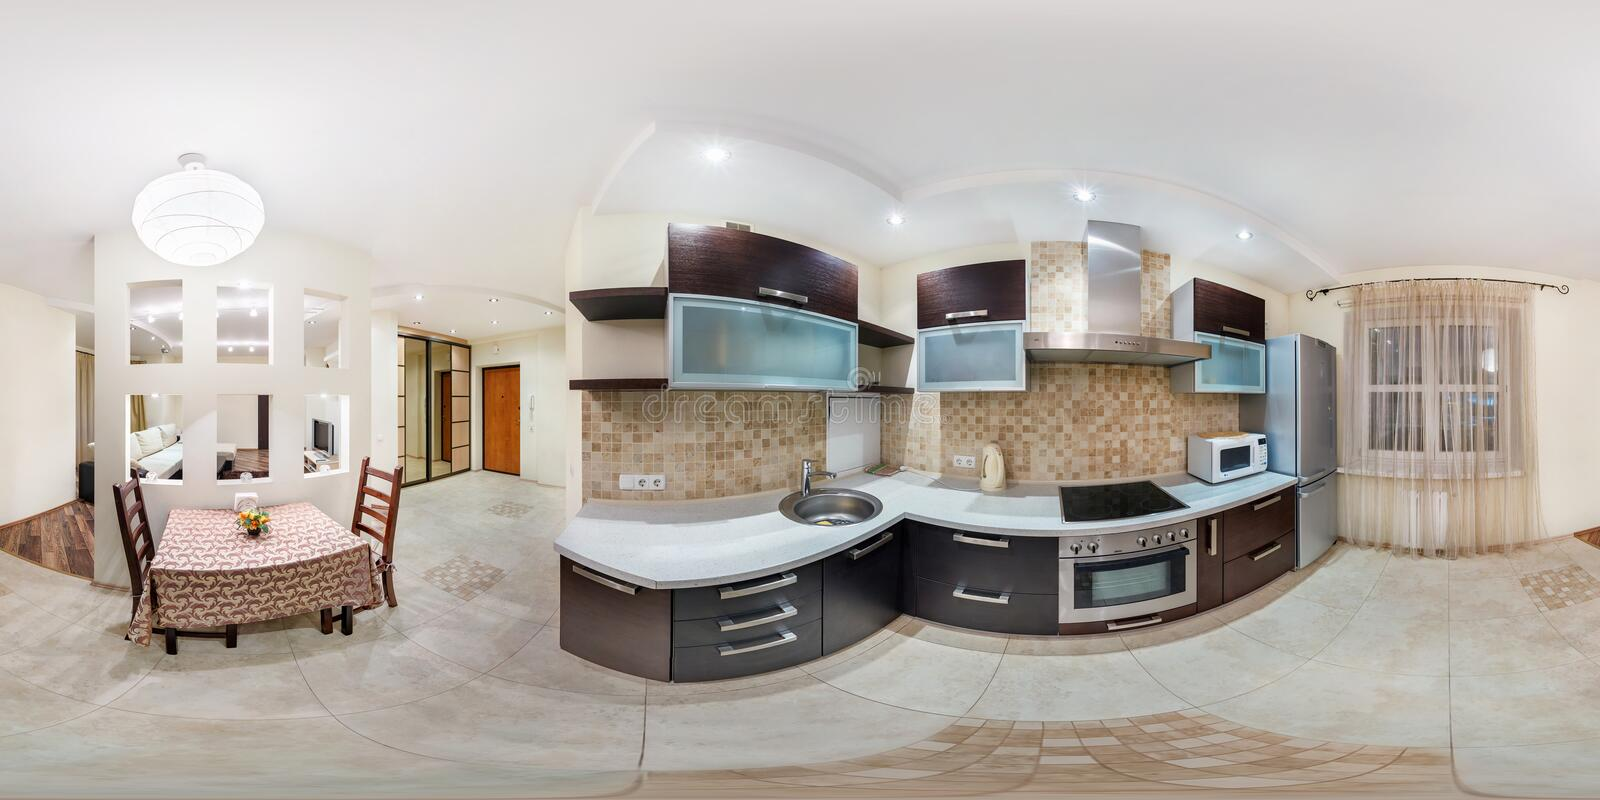 MINSK, BELARUS - FEBRUARY 1, 2013: Panorama in interior stylish kitchen in modern flat in pastel color. Full 360 degree seamless royalty free stock photo